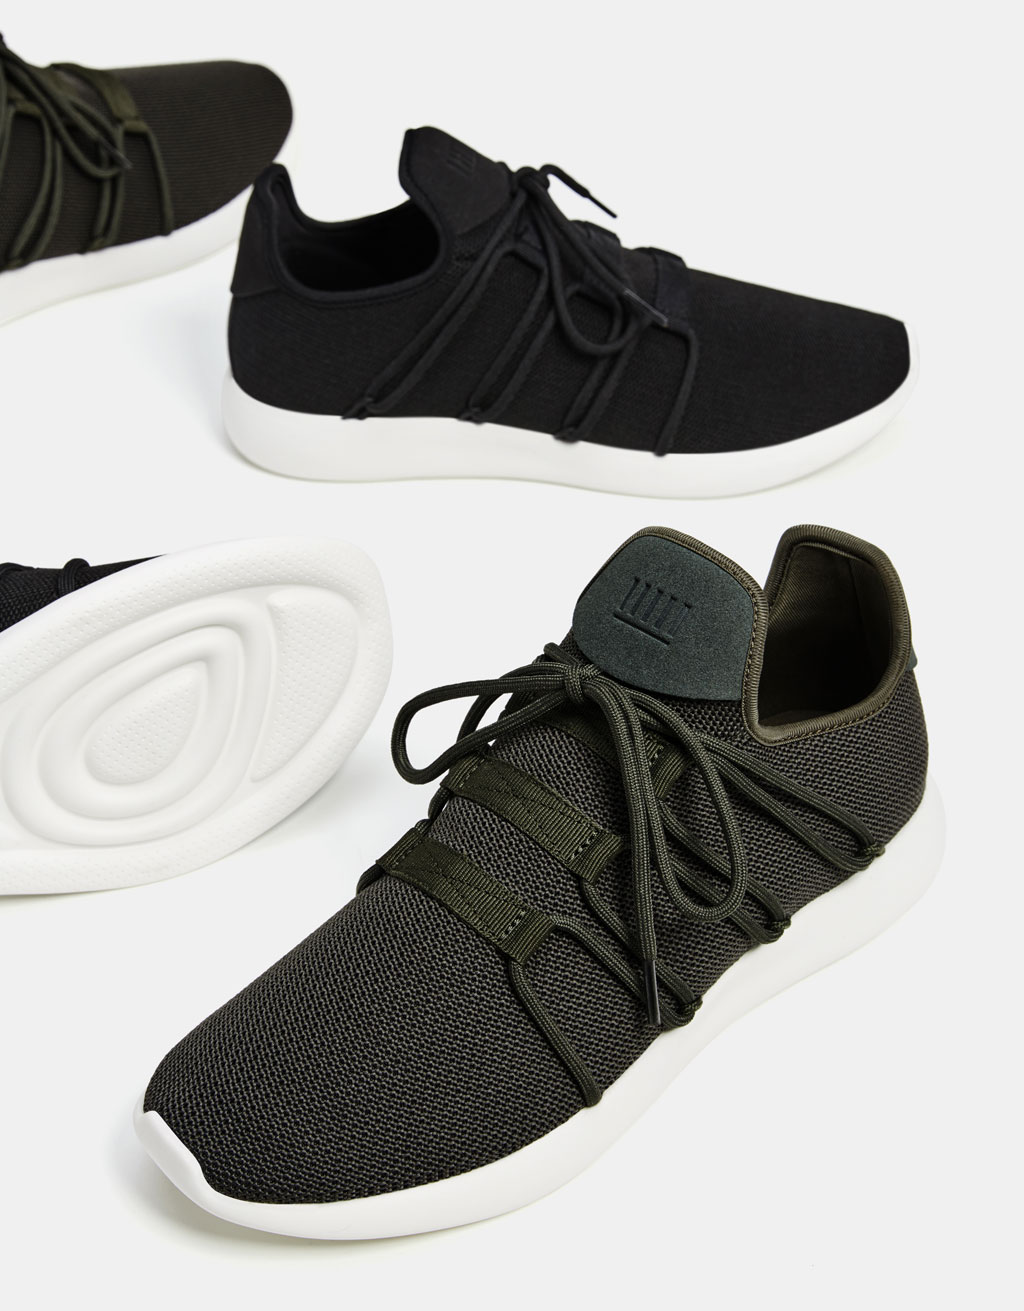 Men's sock-style lace-up sneakers